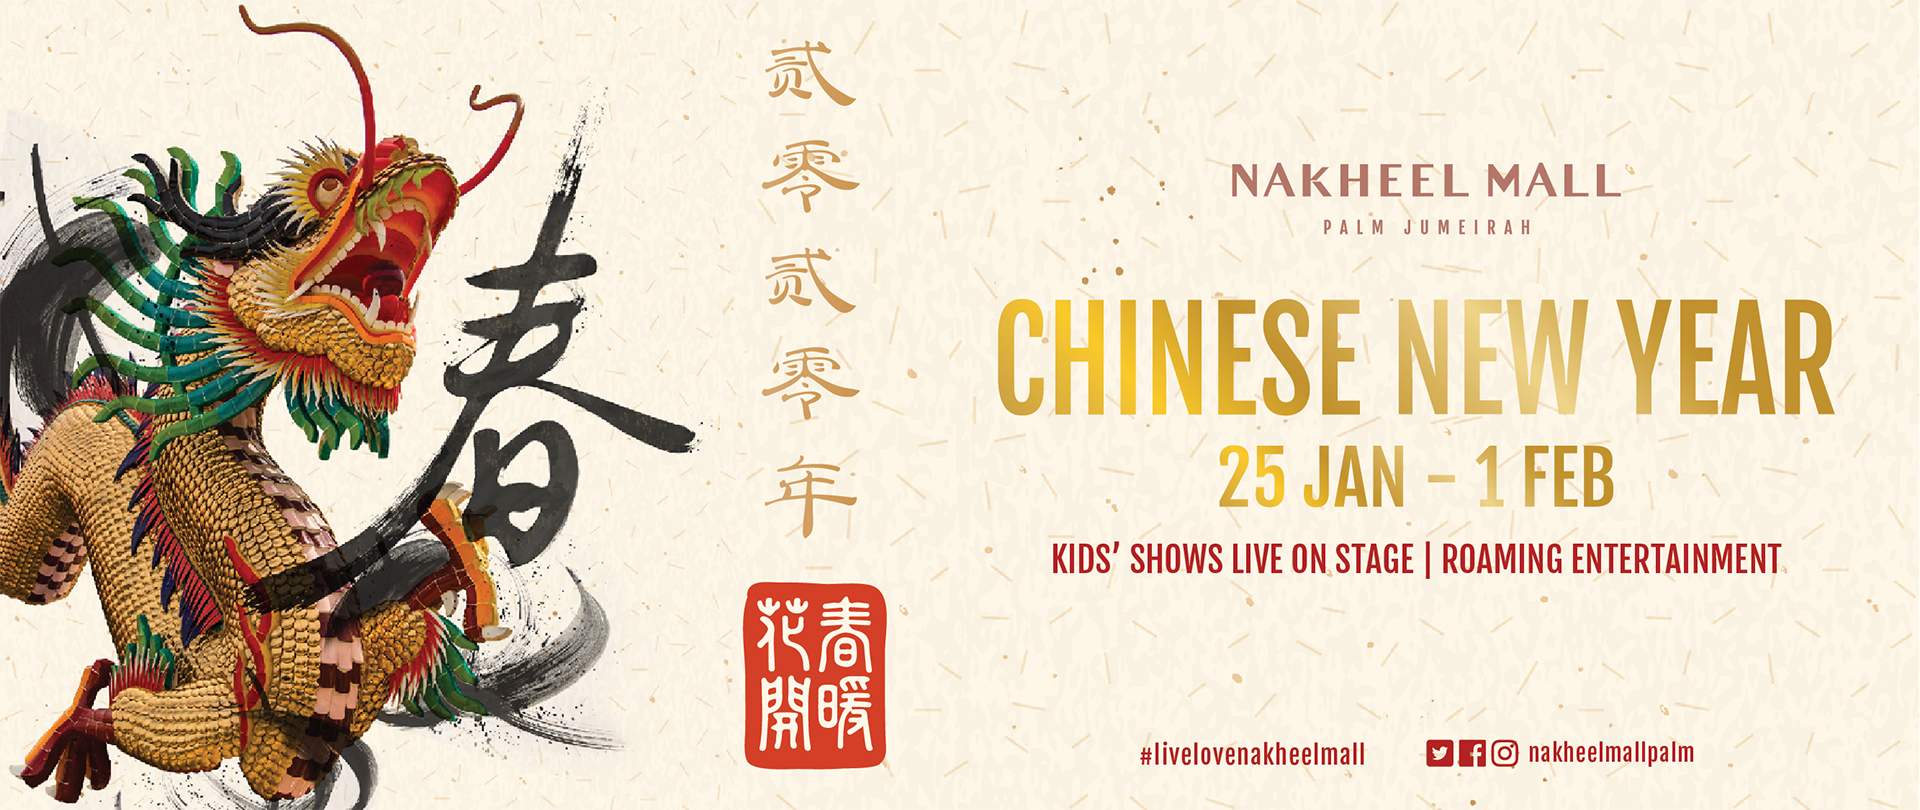 Celebrate Chinese New Year at Nakheel Mall - Dubaisavers